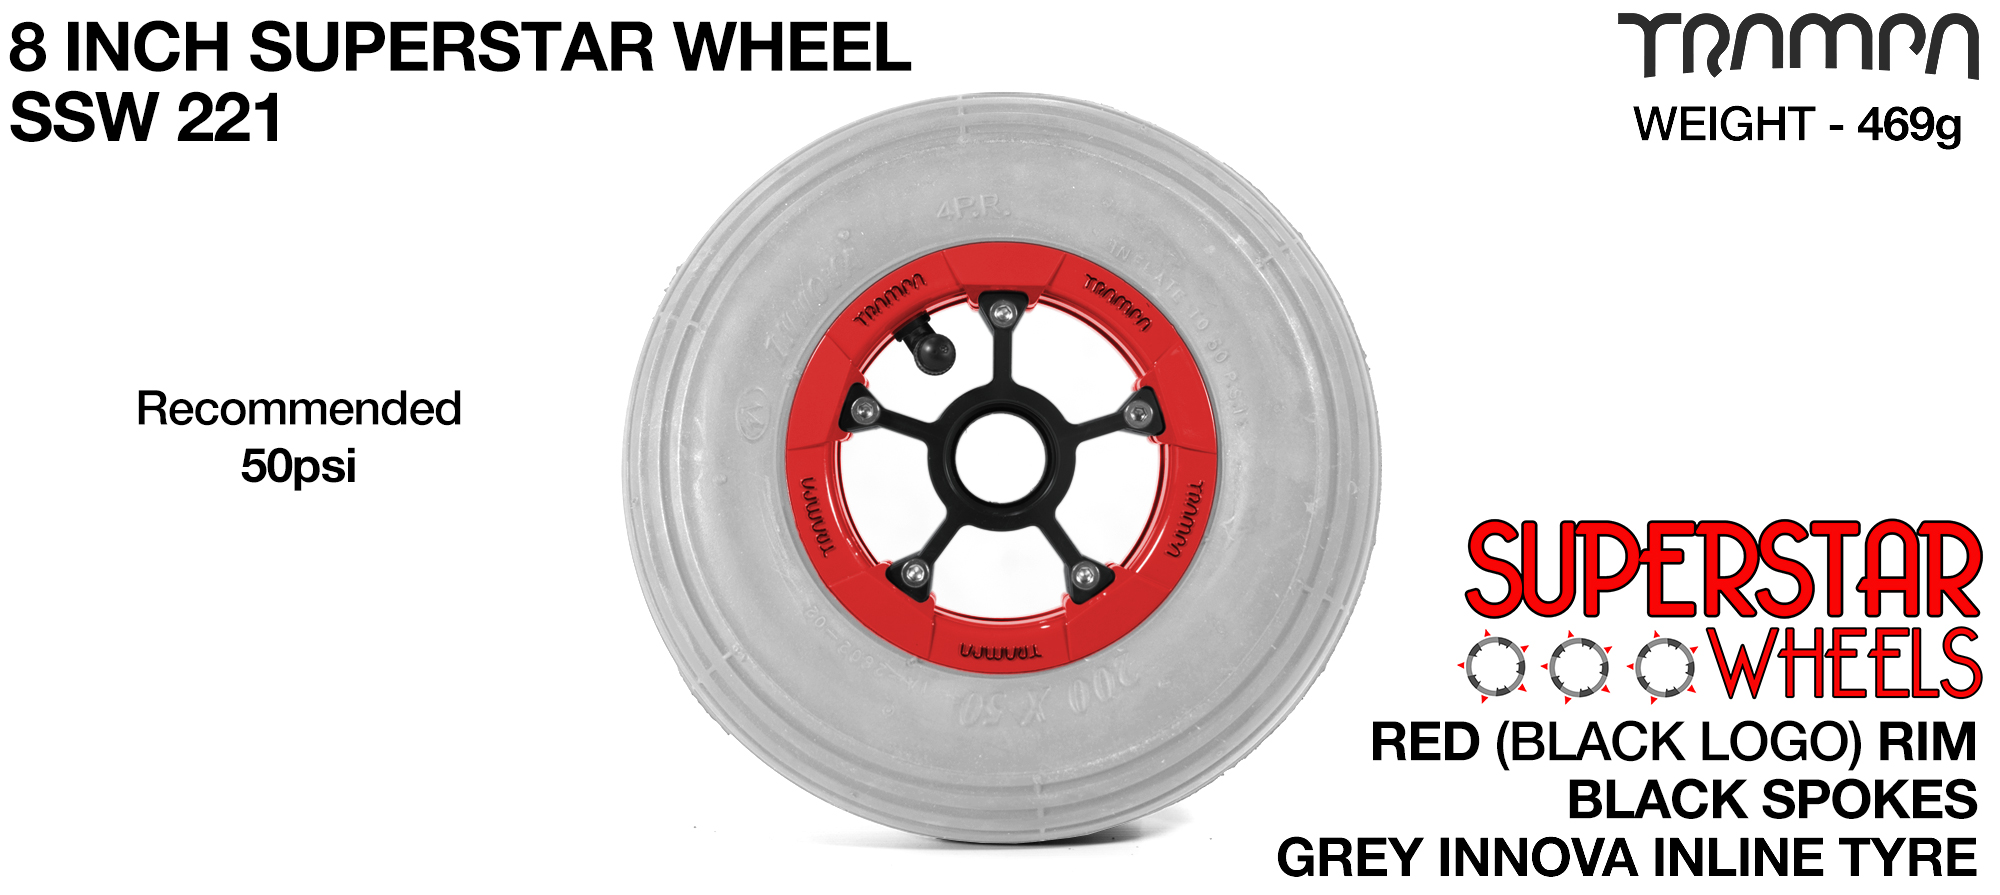 Superstar 8 Inch Wheel - Red Superstar Rim Black Anodised Spokes & Grey 8 Inch Inline Tyre